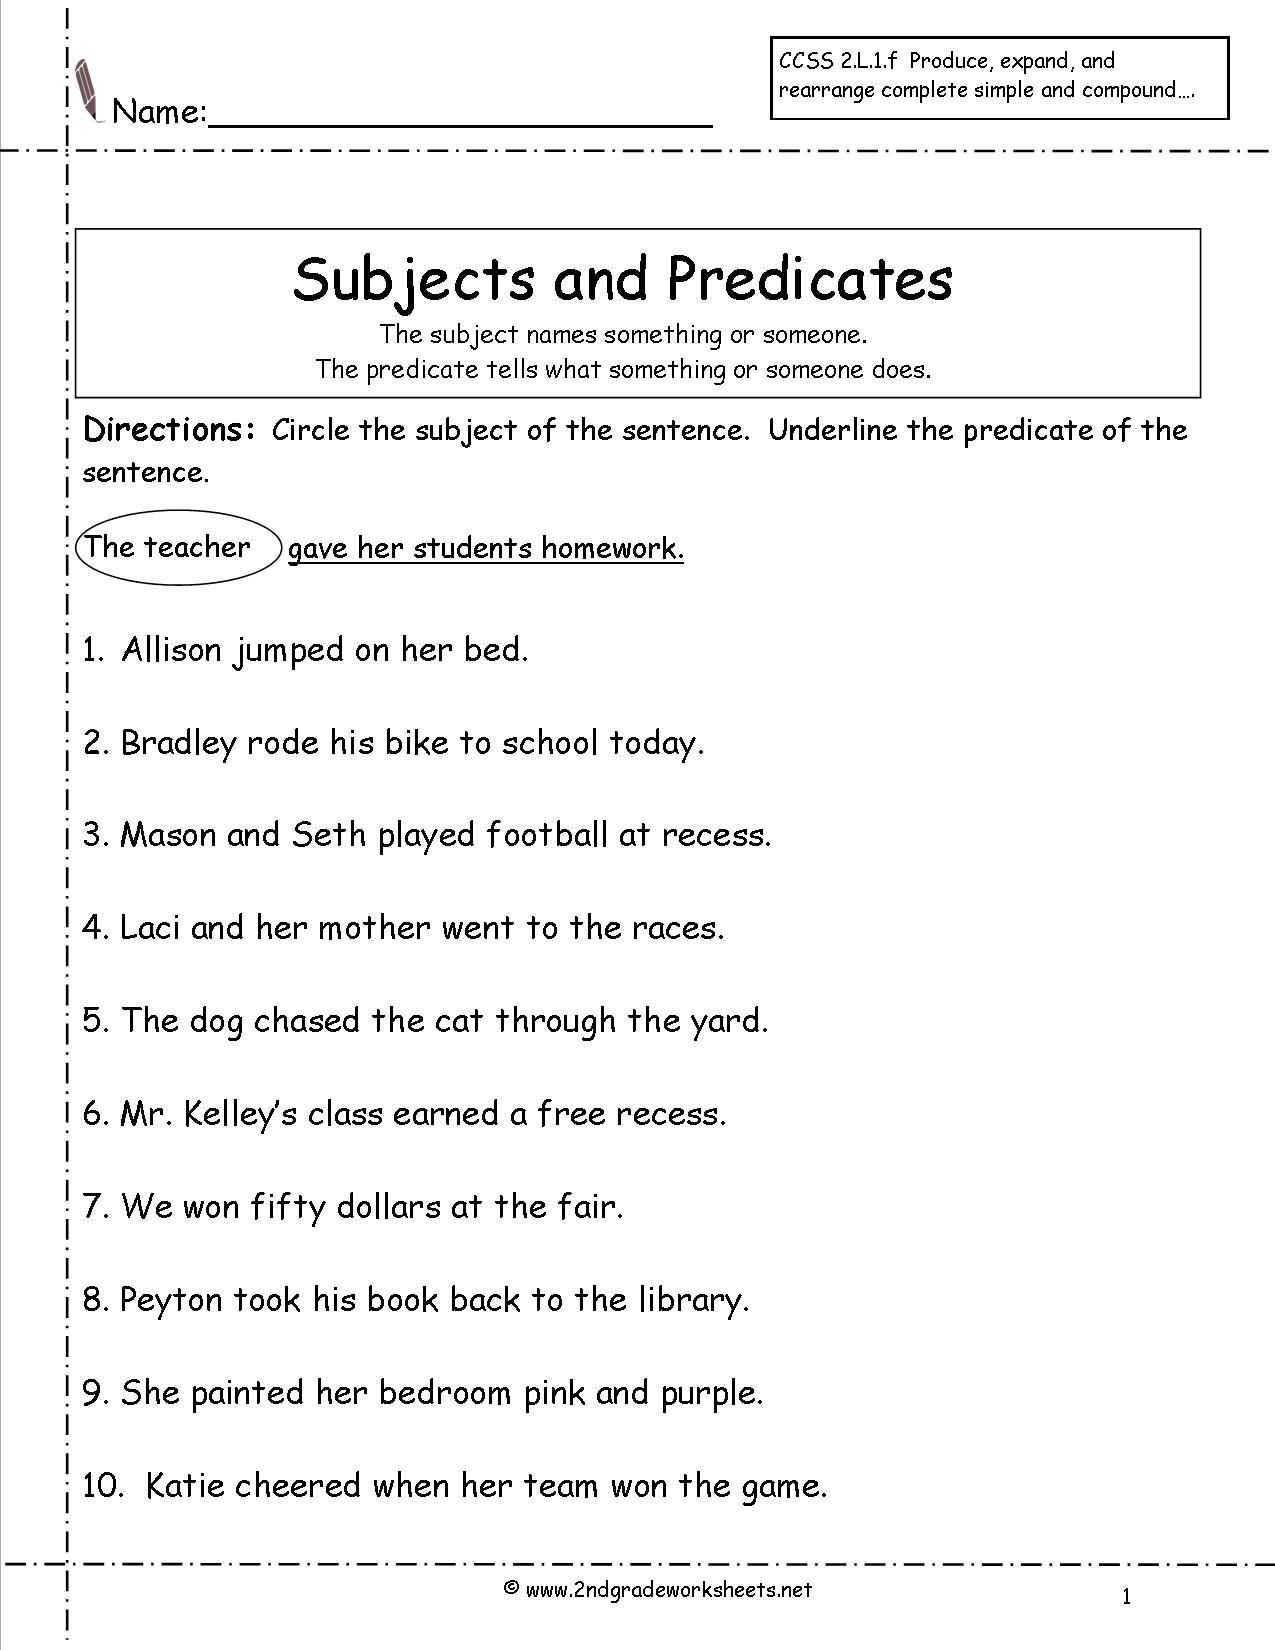 Complete Predicates Worksheet